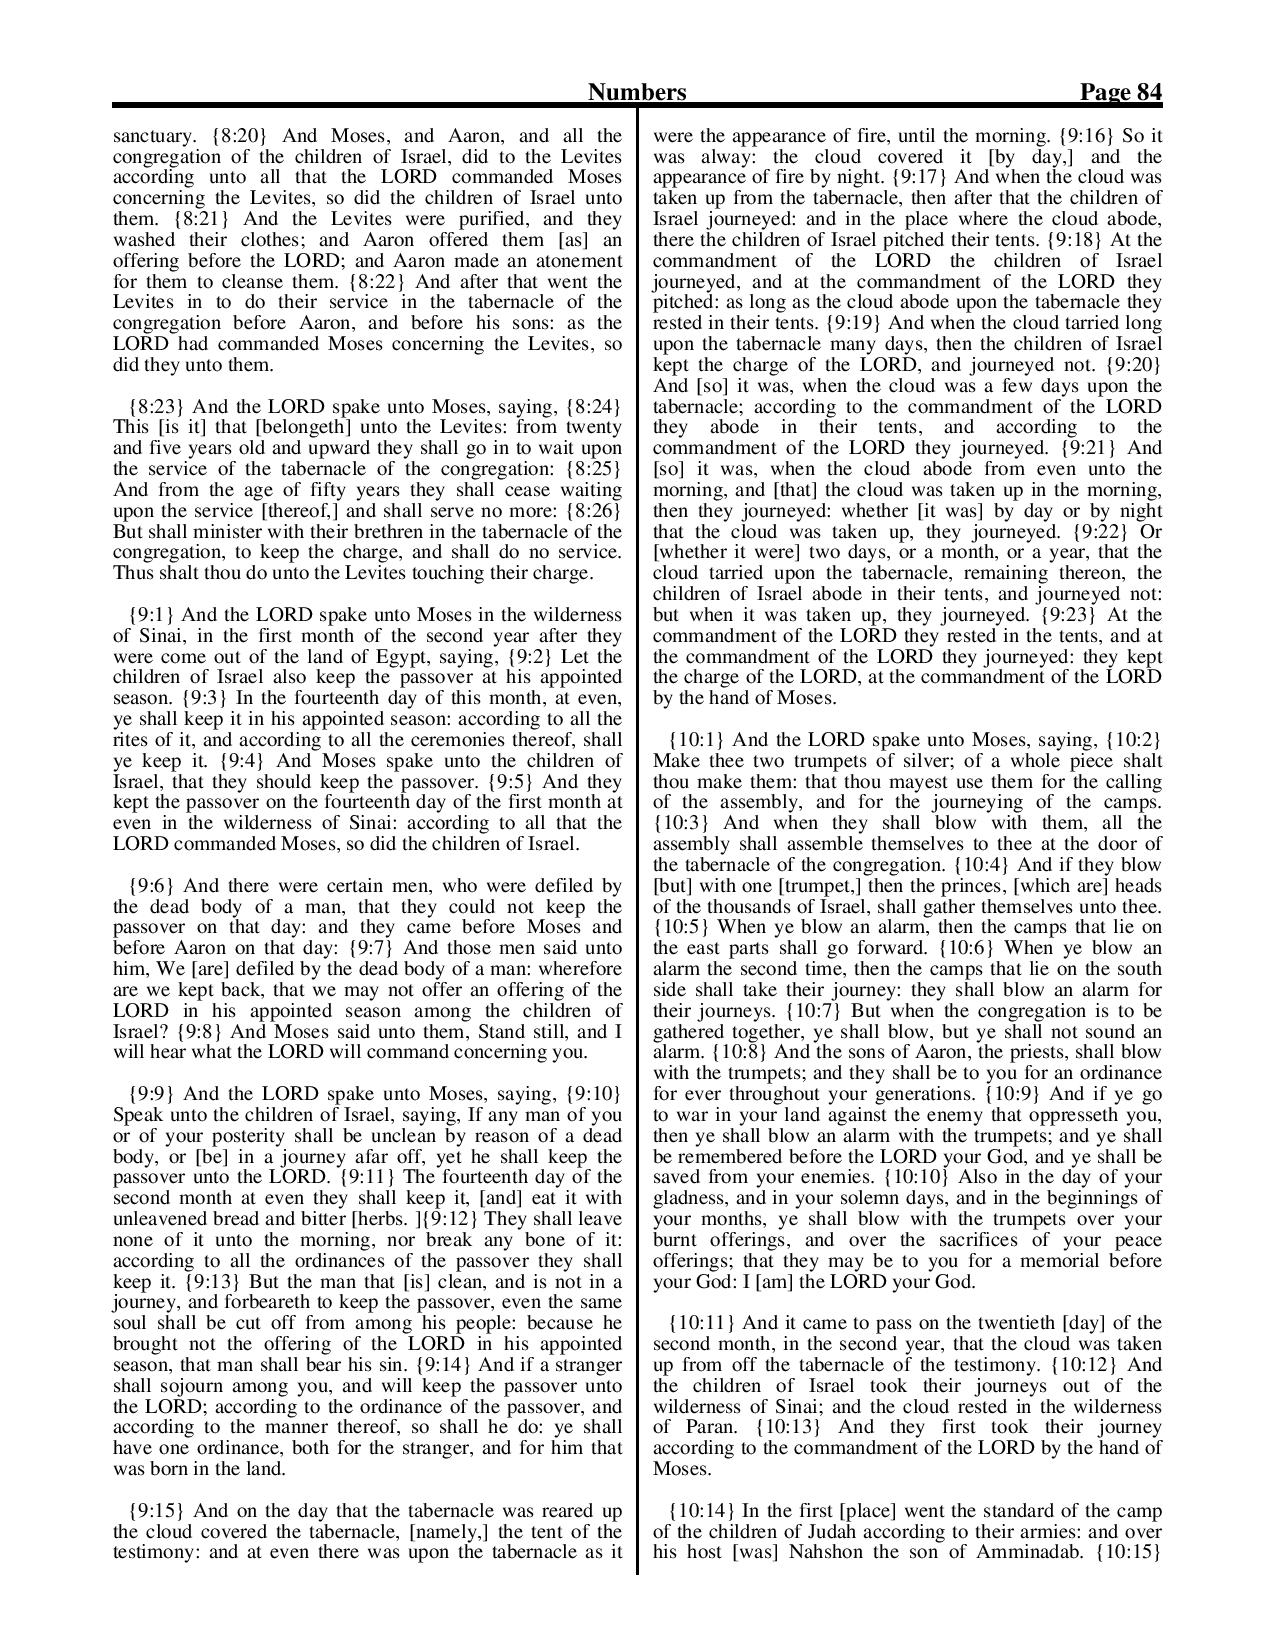 King-James-Bible-KJV-Bible-PDF-page-105